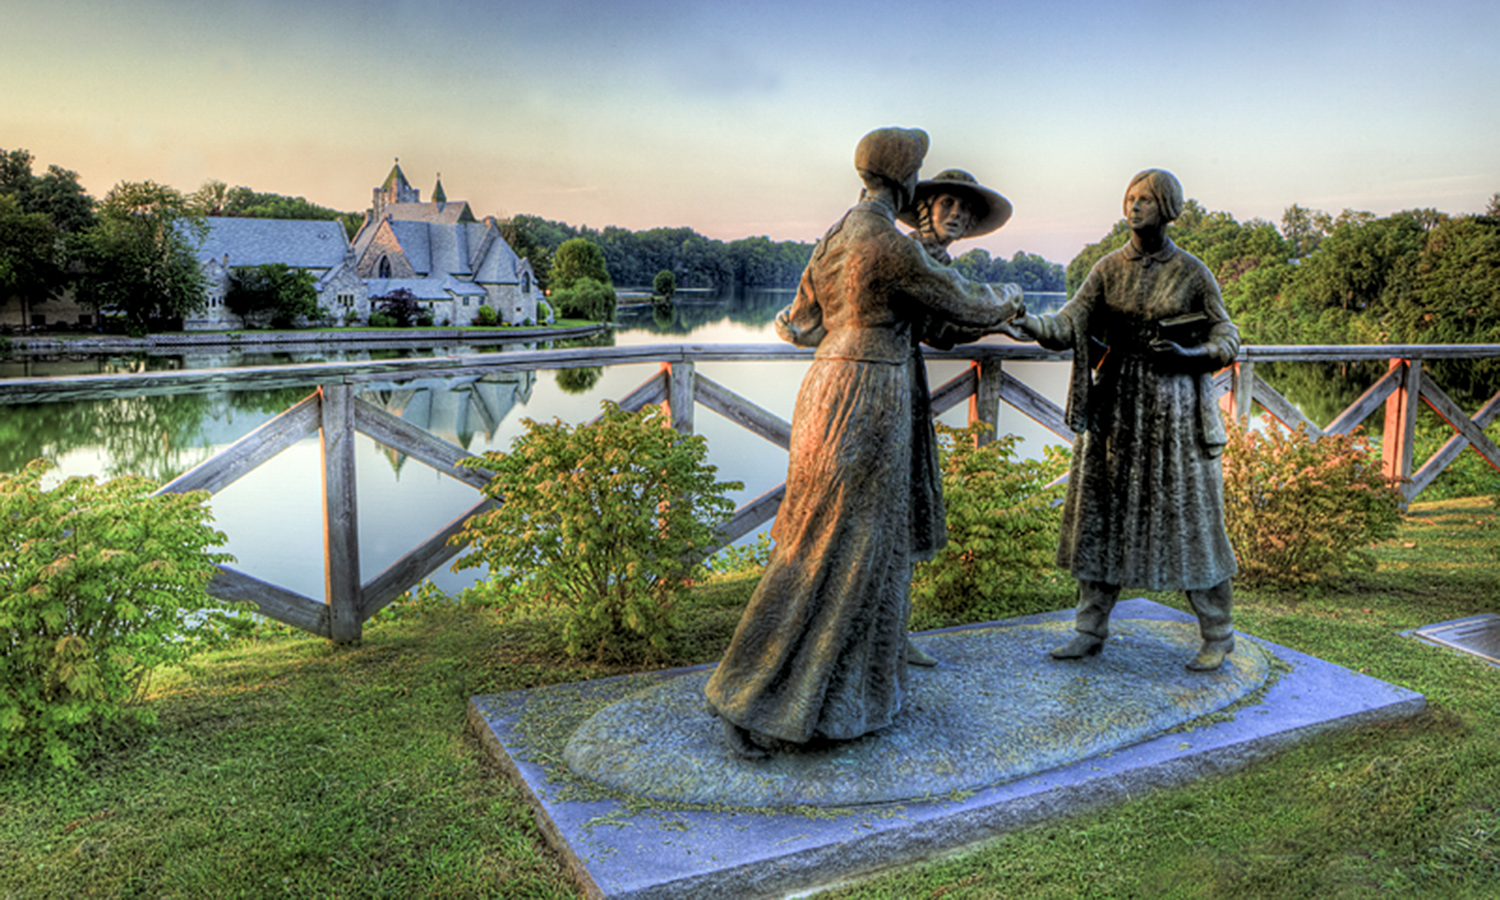 In Seneca Falls, the home of the women's rights and suffrage movements, a statue of Elizabeth Cady Stanton, Susan B. Anthony and Amelia Bloomer created by Professor of Art Ted Aub commemorates the meeting of the influential women. Trinity Church stands in the background.